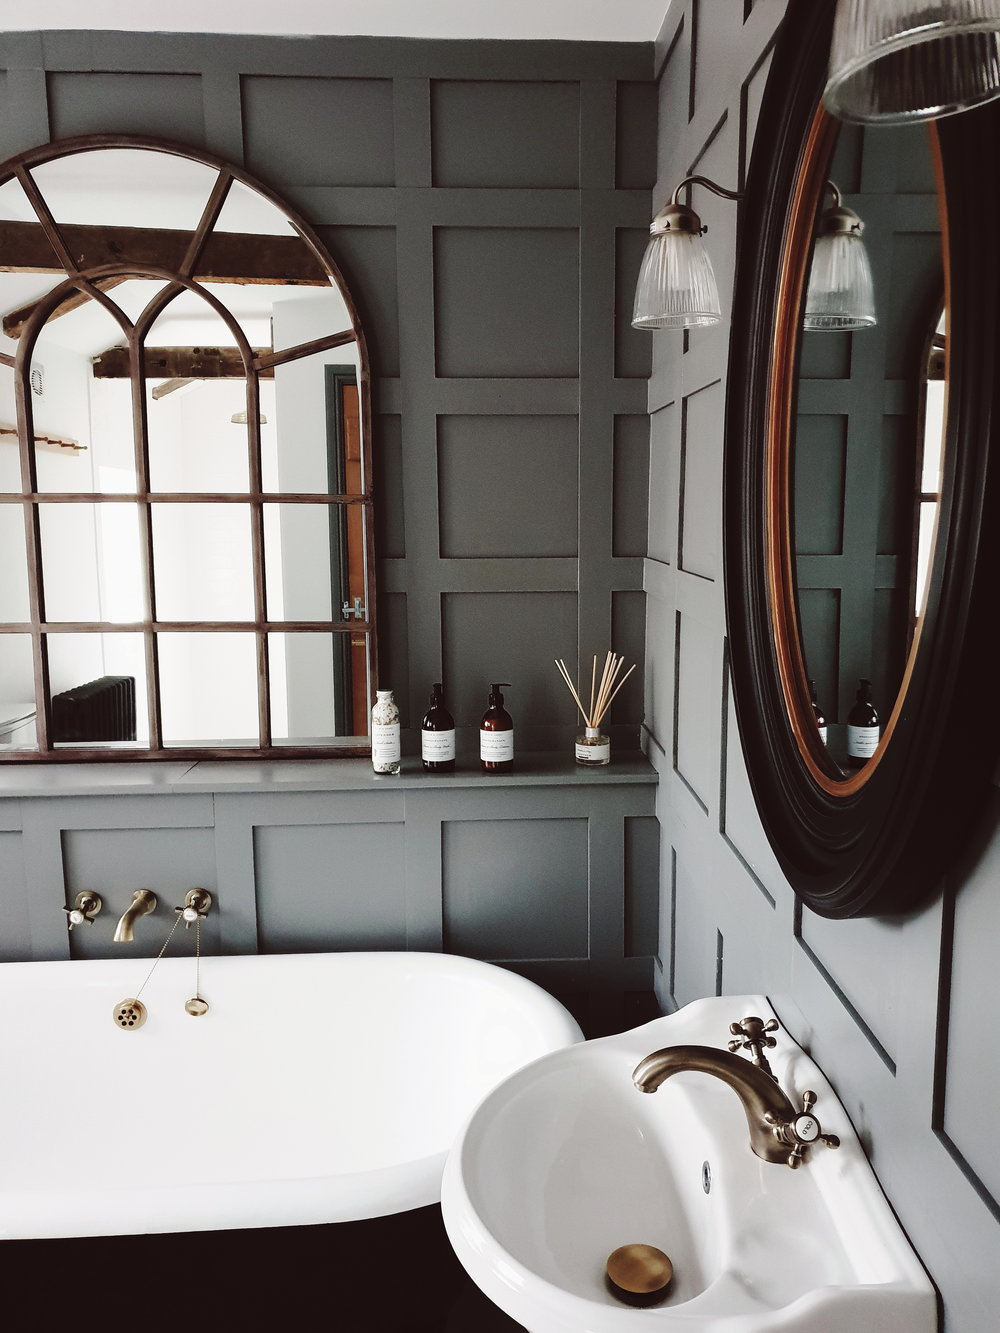 The family bathroom with fabulous Georgian style pannelling